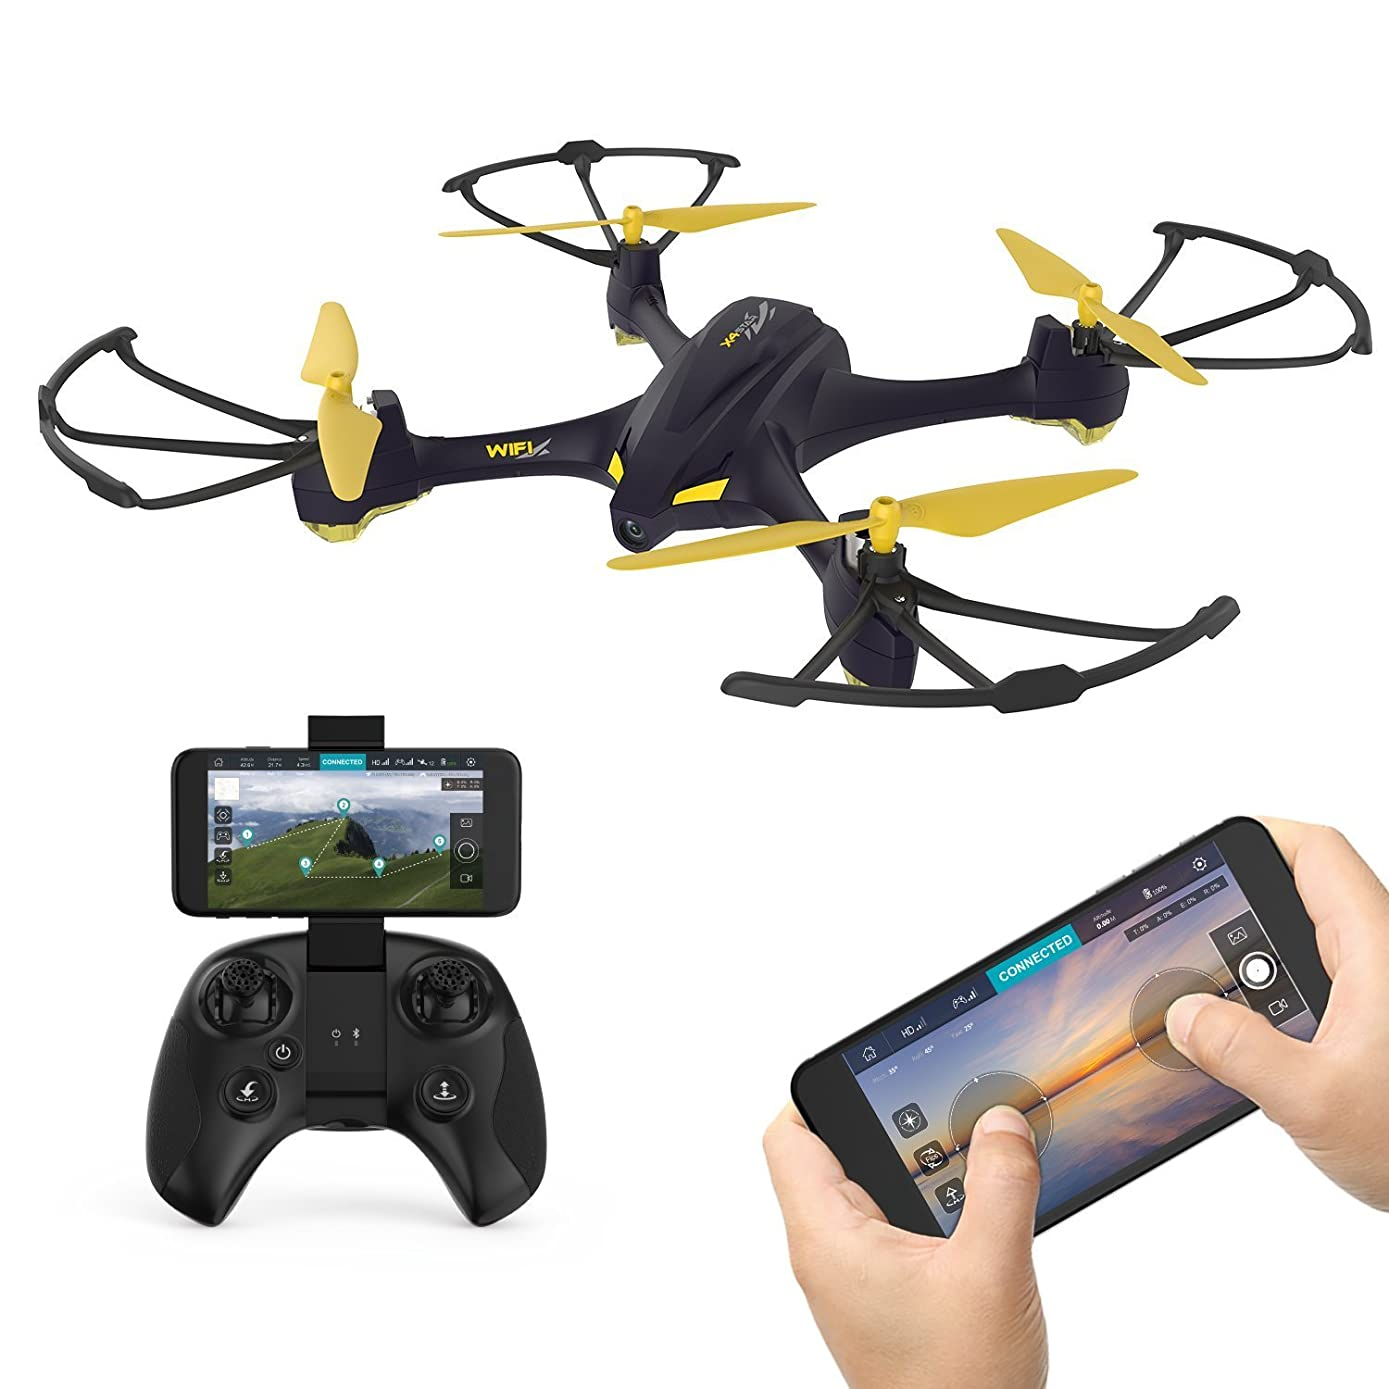 HUBSAN H507A+ X4 Star APP Driven Drone GPS 6 Axis Gyro 720P HD Camera RTF Quadcopter (Upgraded Version H507A+)